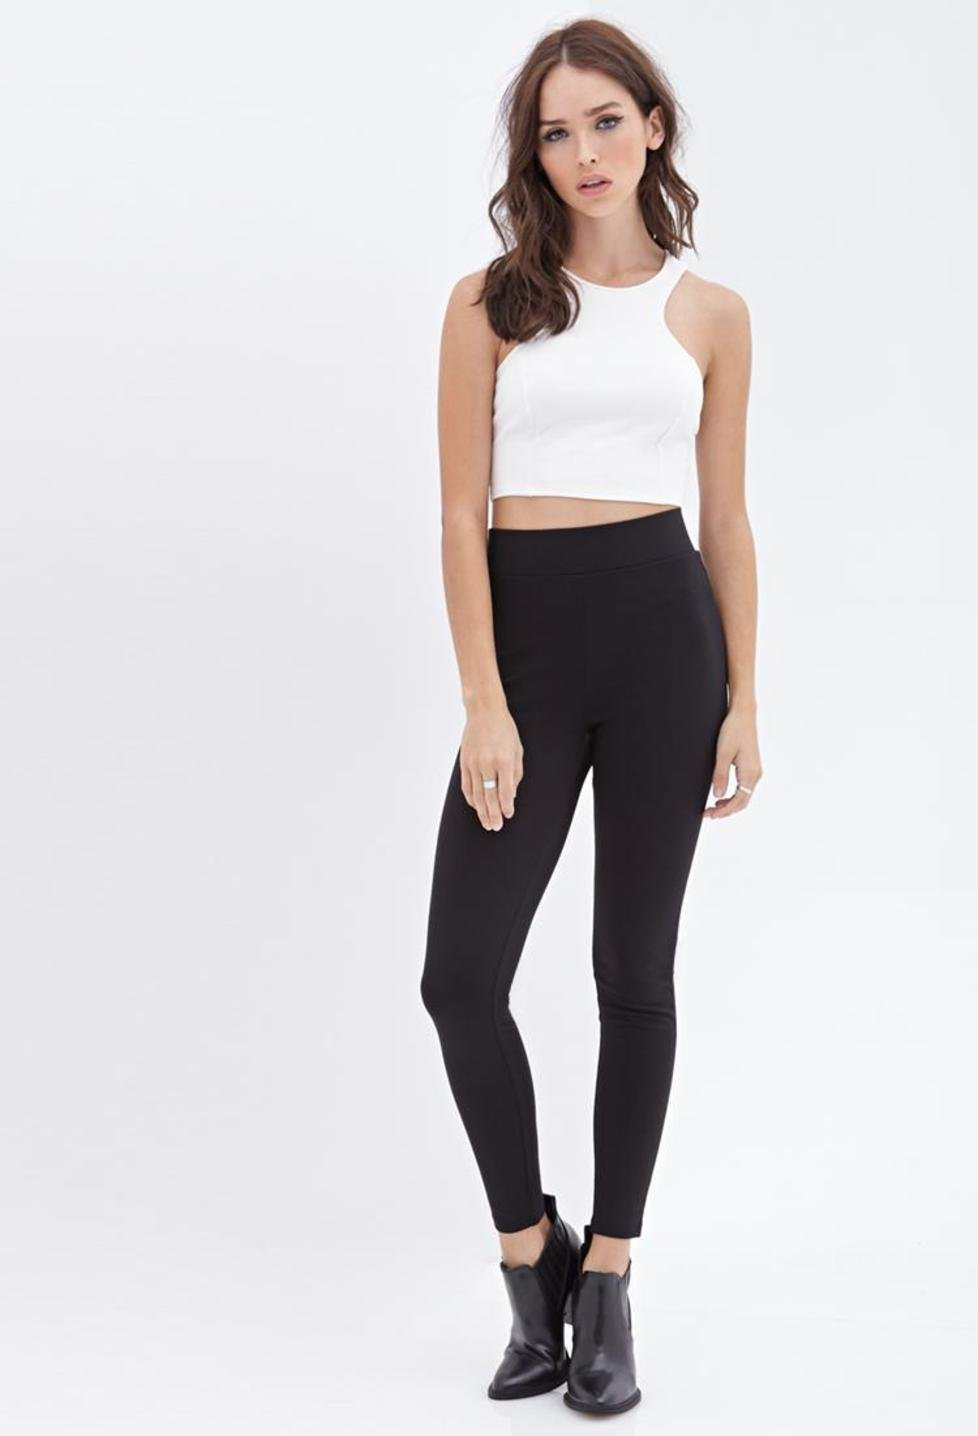 High Waisted Leggings for Working Out